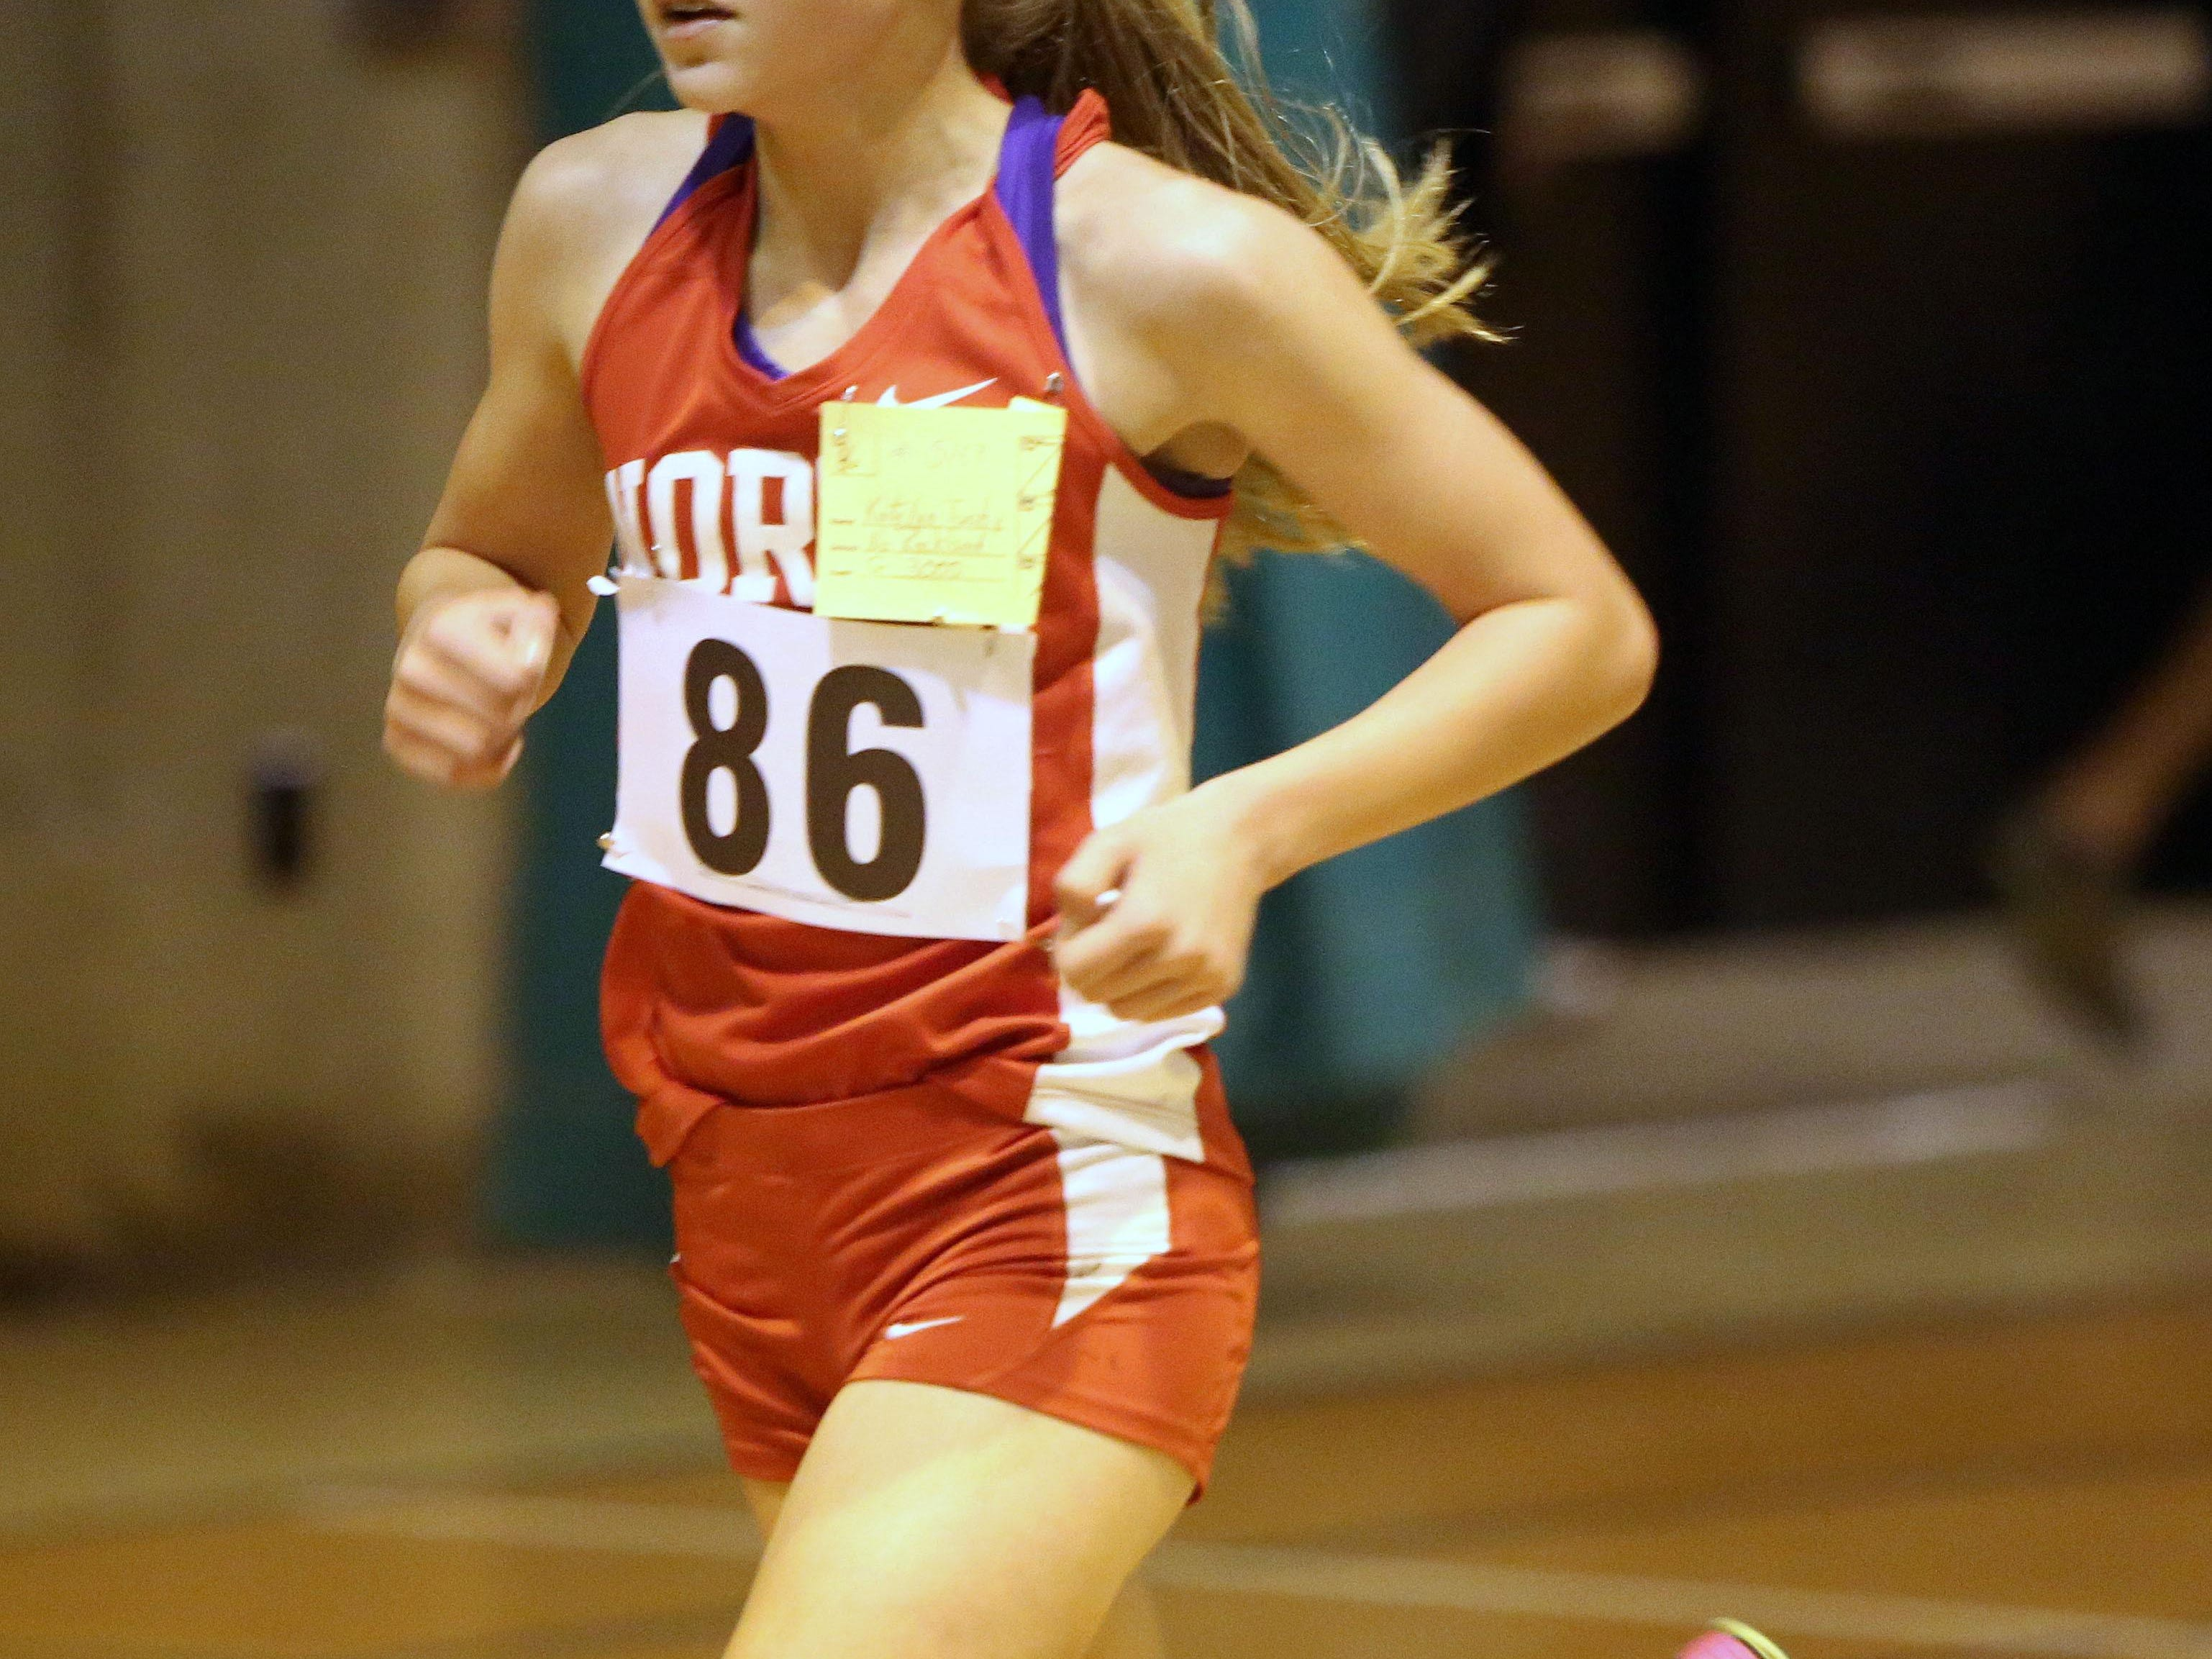 Katelyn Tuohy, an 8th grader from North Rockland, won the girls 3000 invitational during the Rockland Coaches Invitational indoor track meet, Jan. 6, 2016.